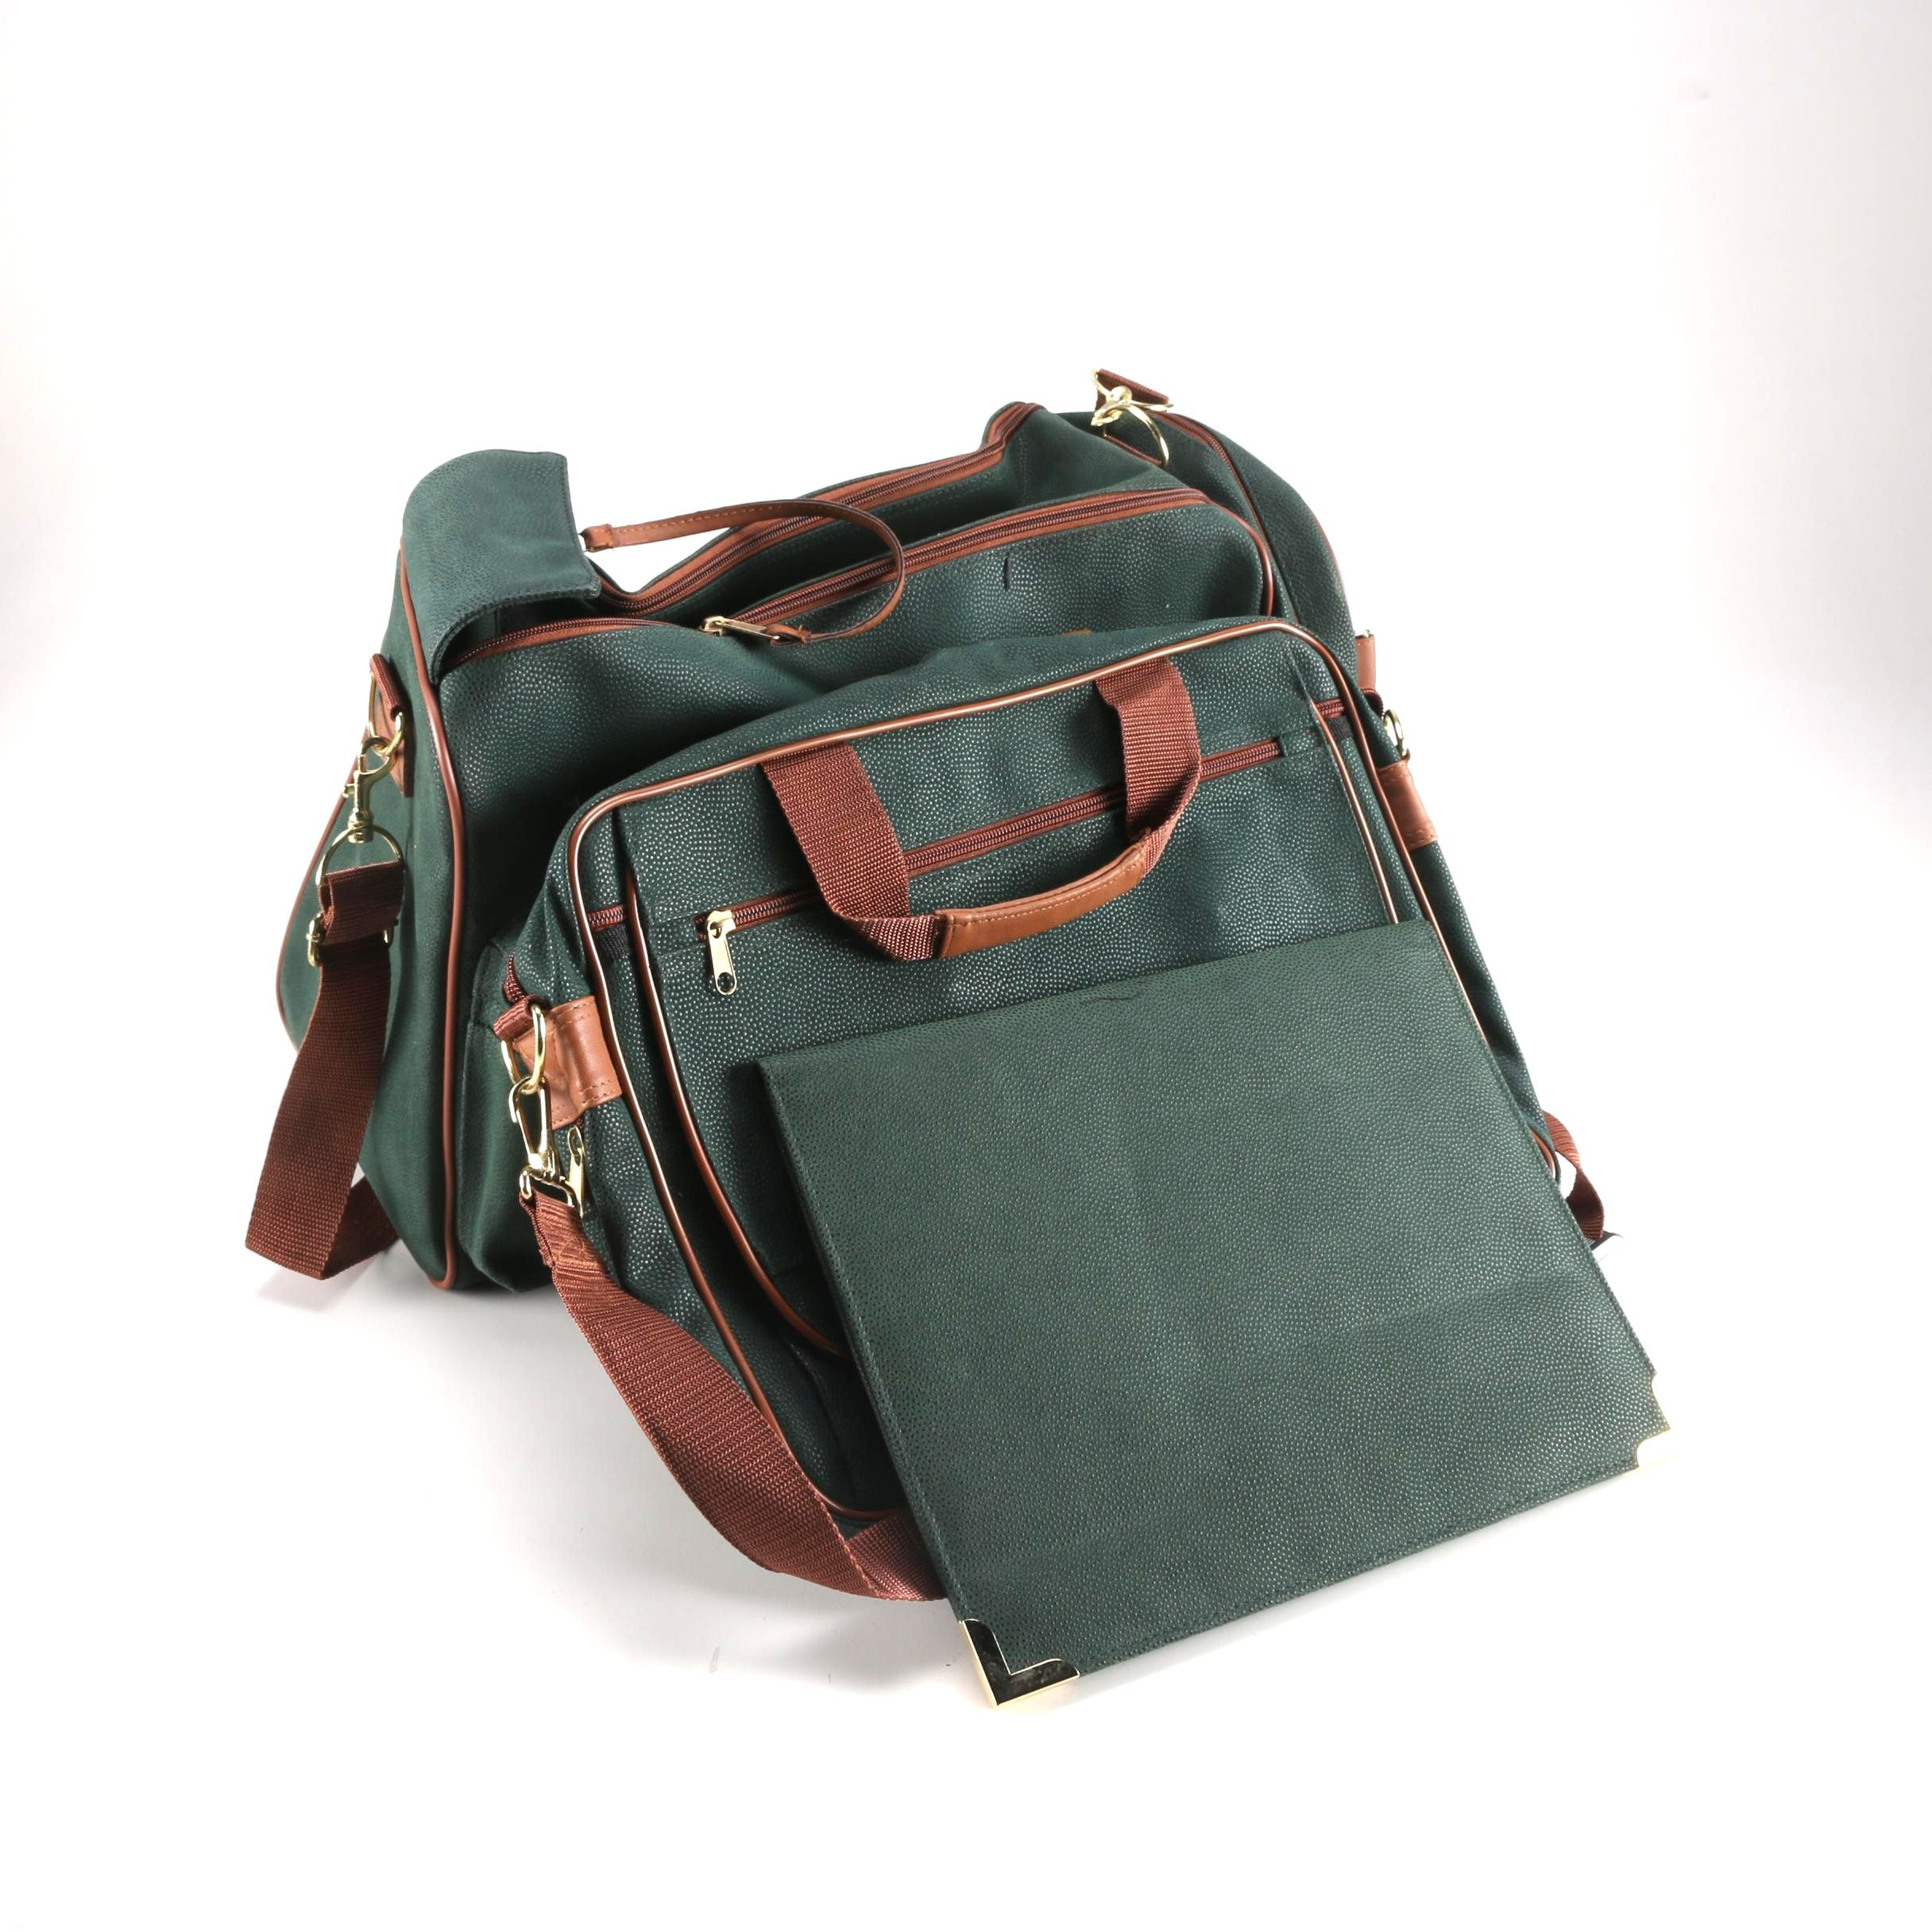 Green and Brown Leather Accessories